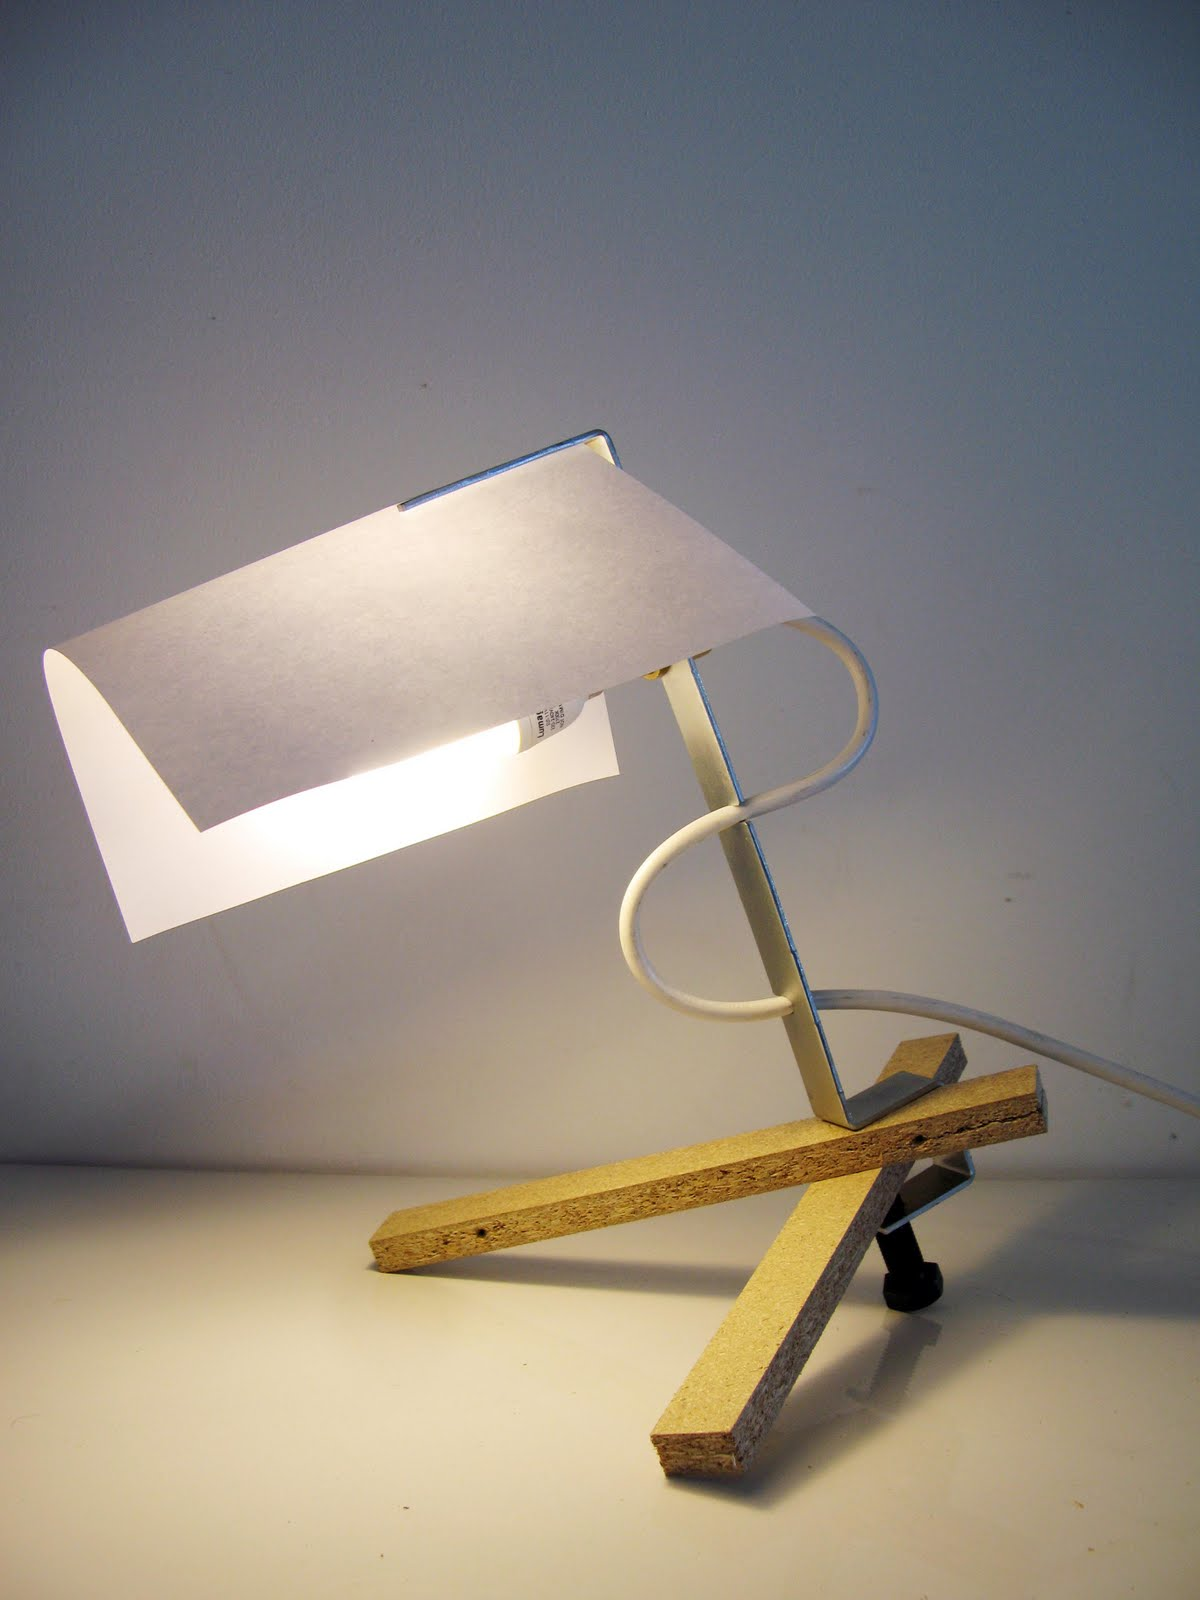 Bracket Clamped Onto Off Cut Wood To Make A Desk Lamp